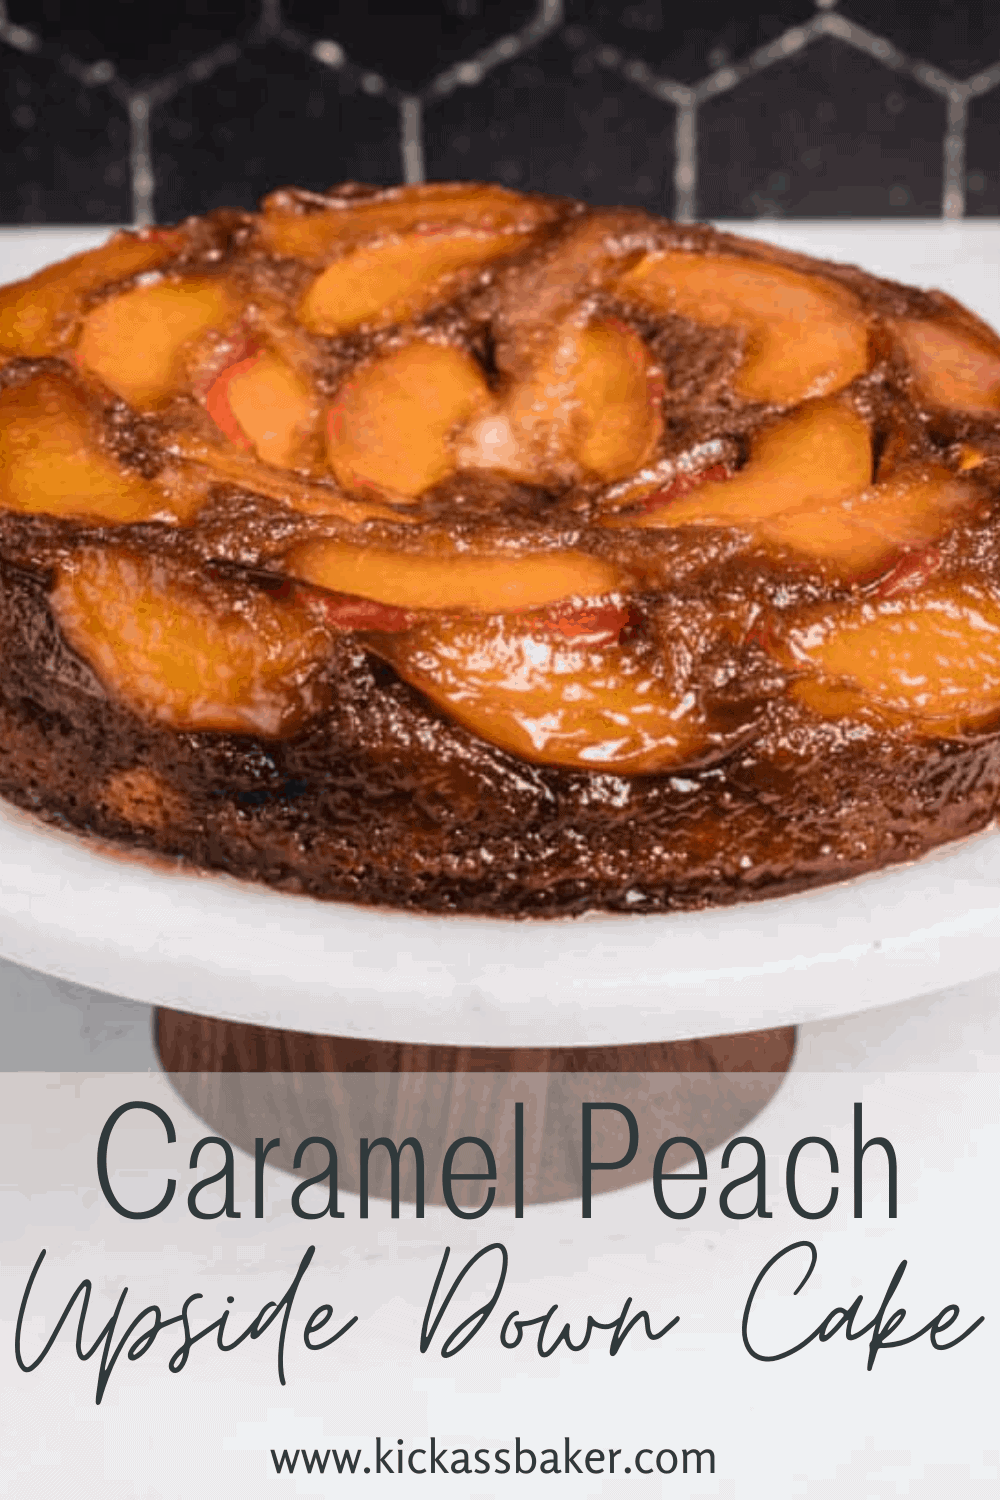 Use fresh or frozen peaches to make this delicious caramel peach upside down cake from scratch.